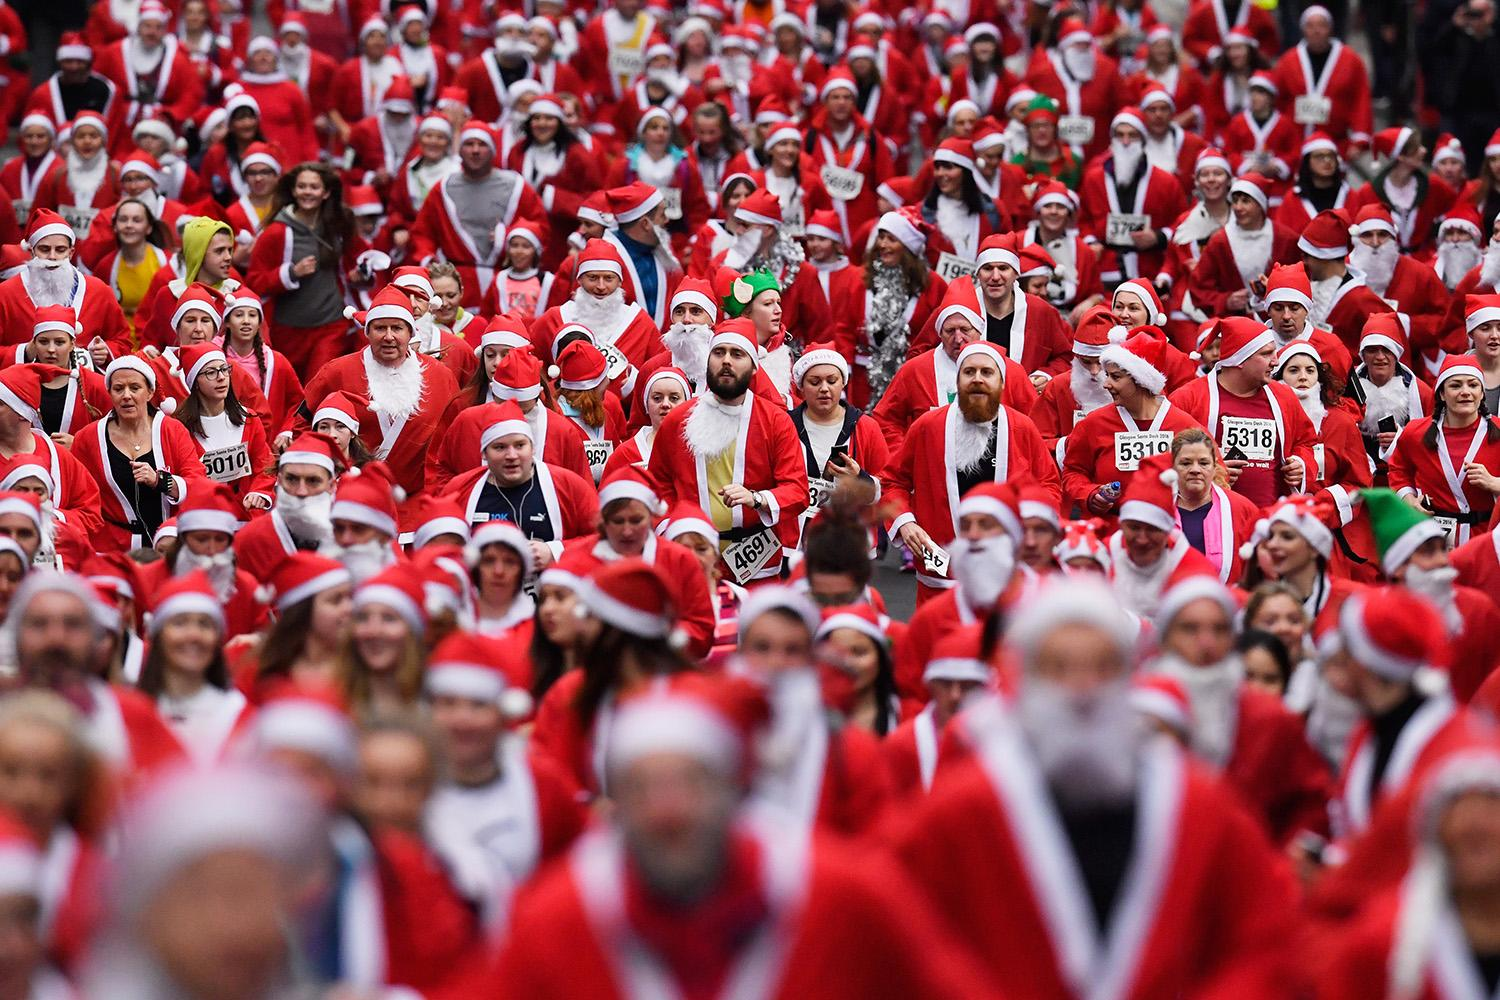 """<p>Thousands of people dressed as Santa participate in """"The Santa Dash"""" in Glasgow, Scotland. (Photo: Jeff J Mitchell/Getty Images) </p>"""